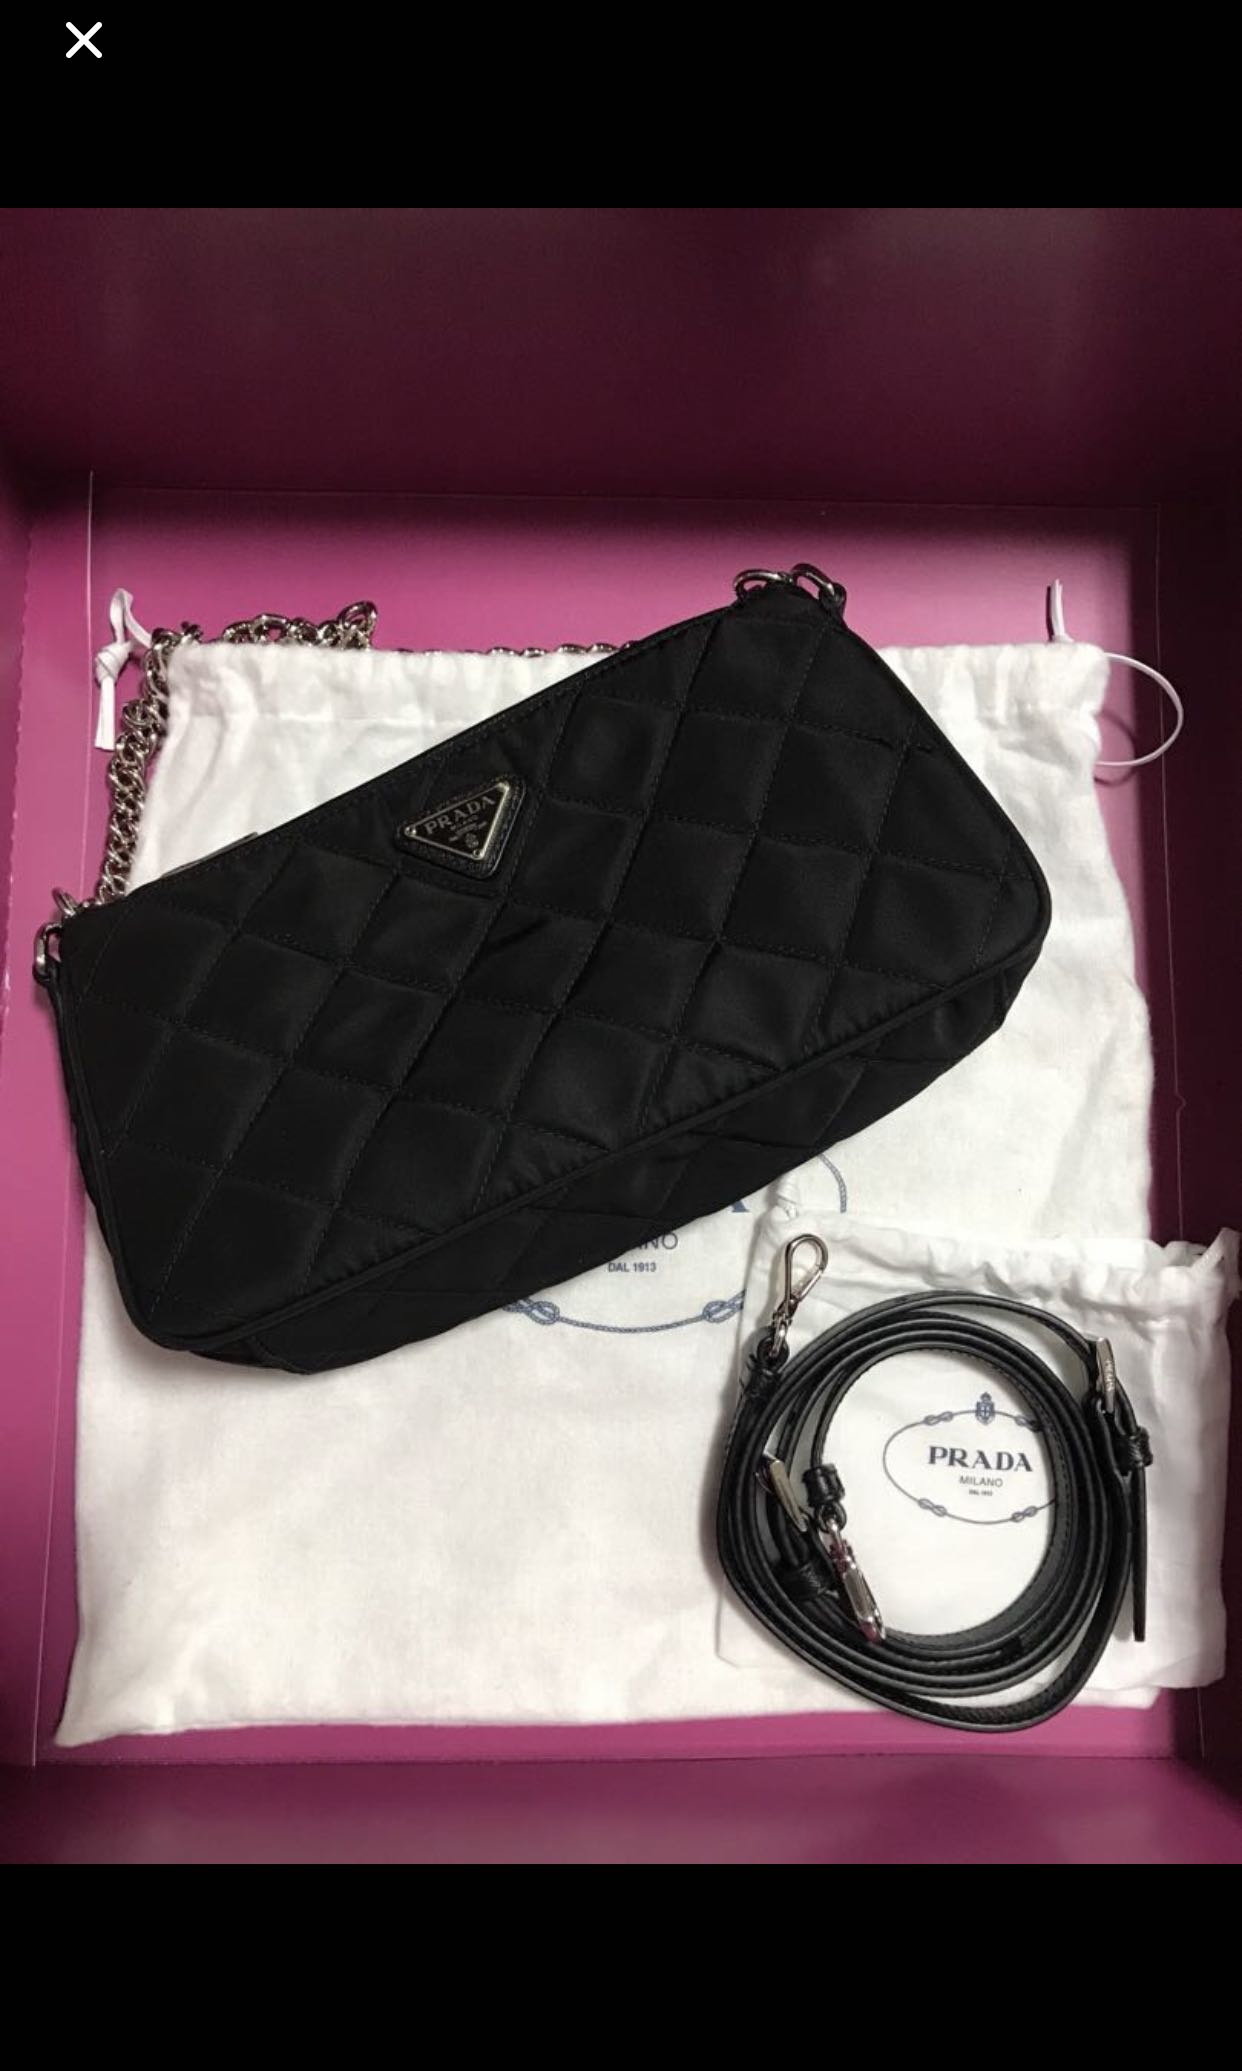 07a968556590 Prada handbag, Women's Fashion, Bags & Wallets, Handbags on Carousell